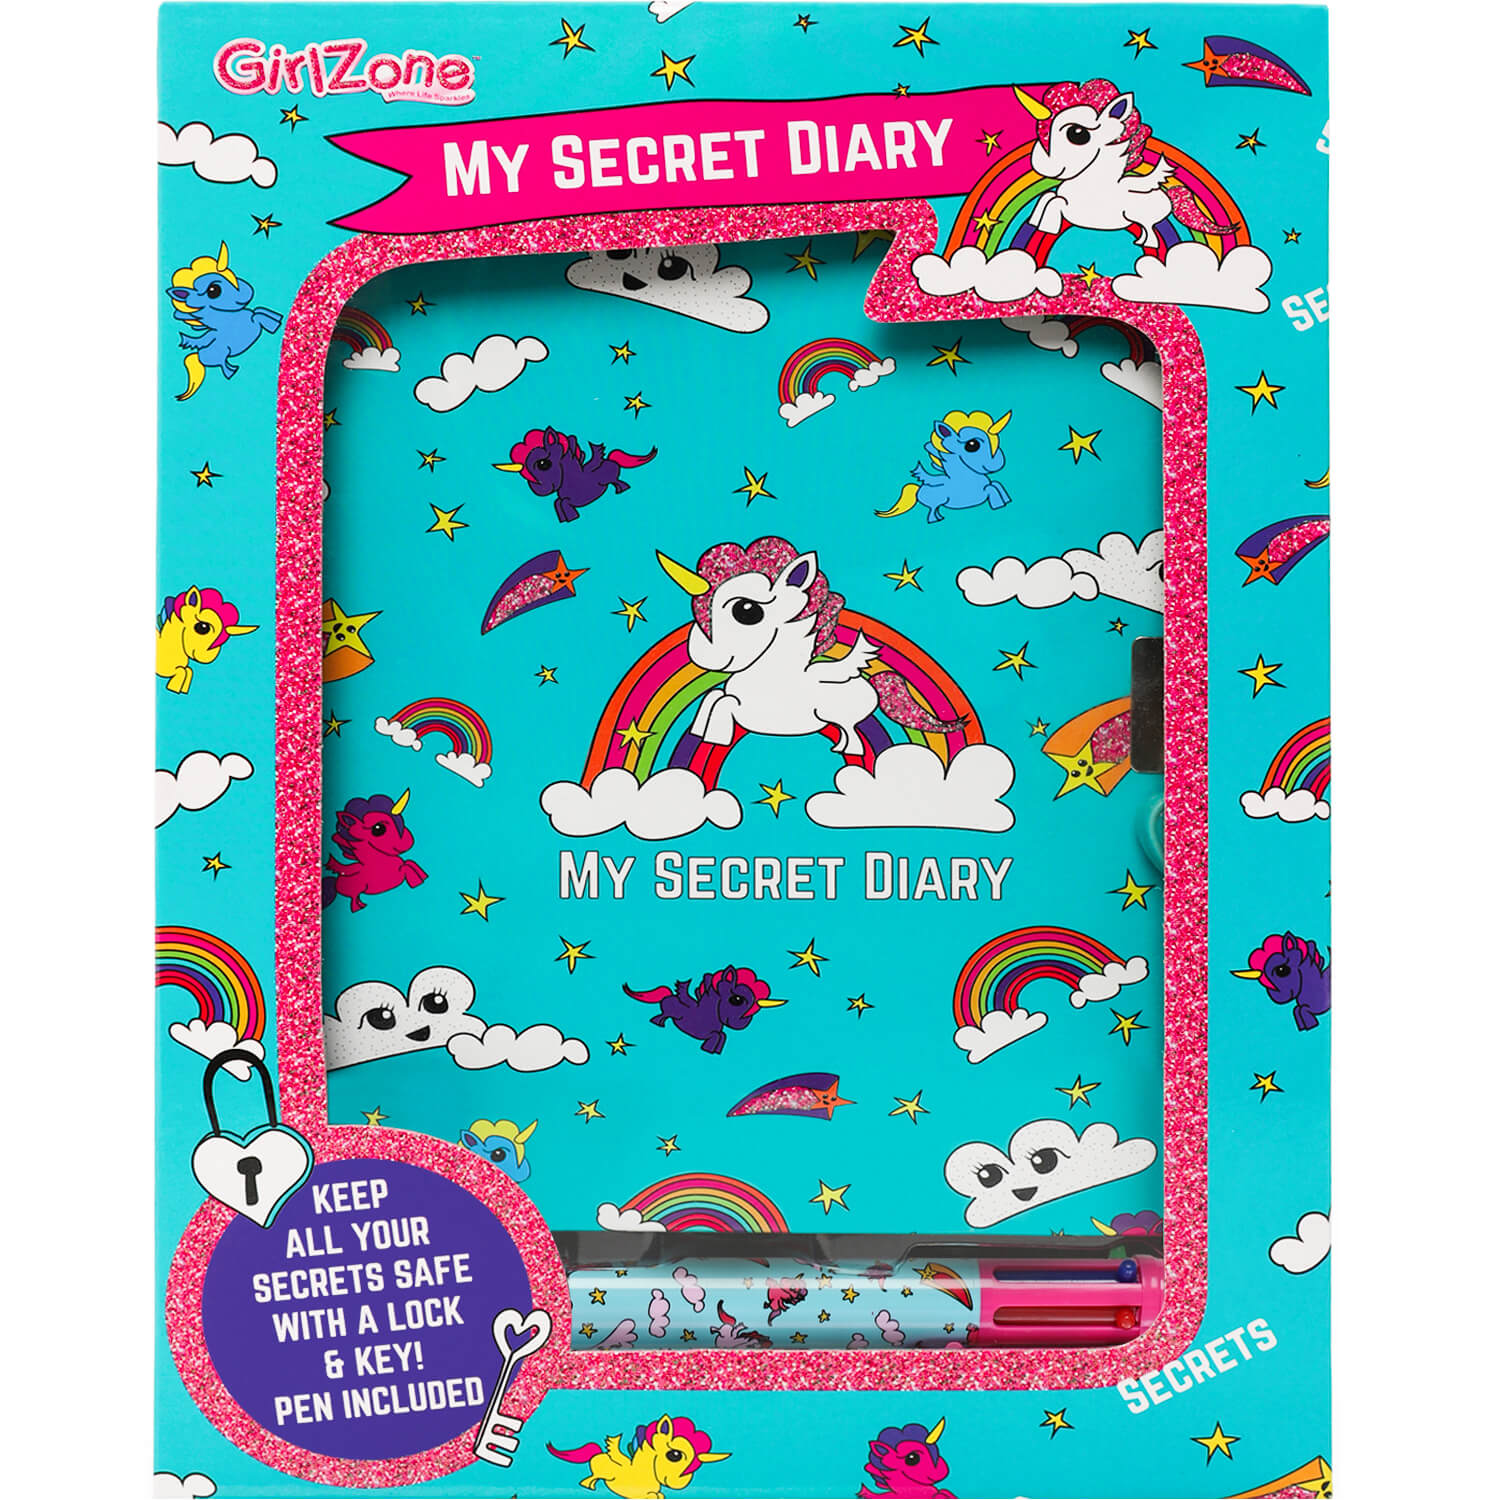 Girls' lockable diary, Lockable diary for girls